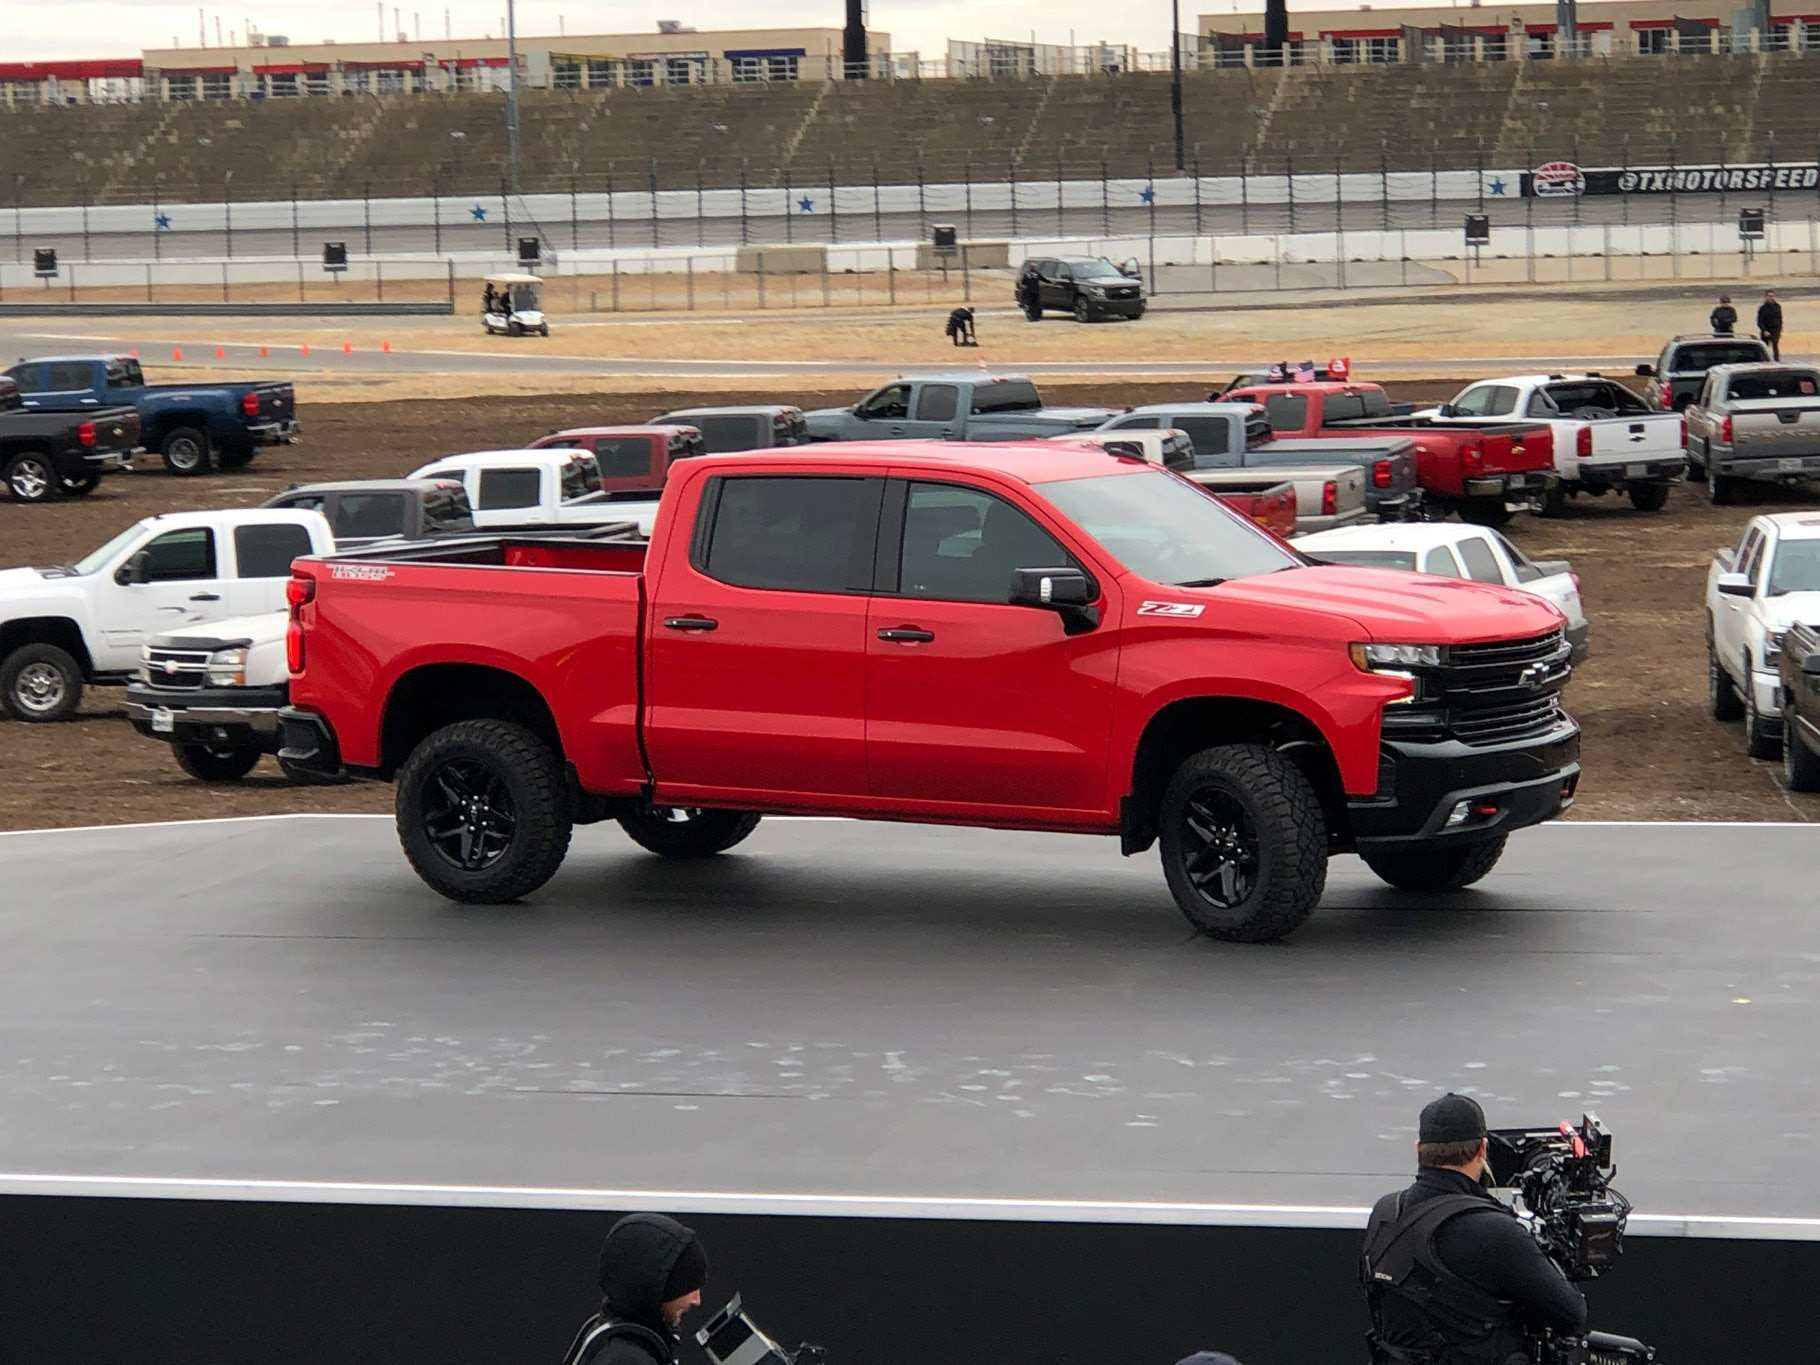 88 All New New 2019 Chevrolet Silverado Work Truck Concept Redesign And Review Exterior and Interior for New 2019 Chevrolet Silverado Work Truck Concept Redesign And Review